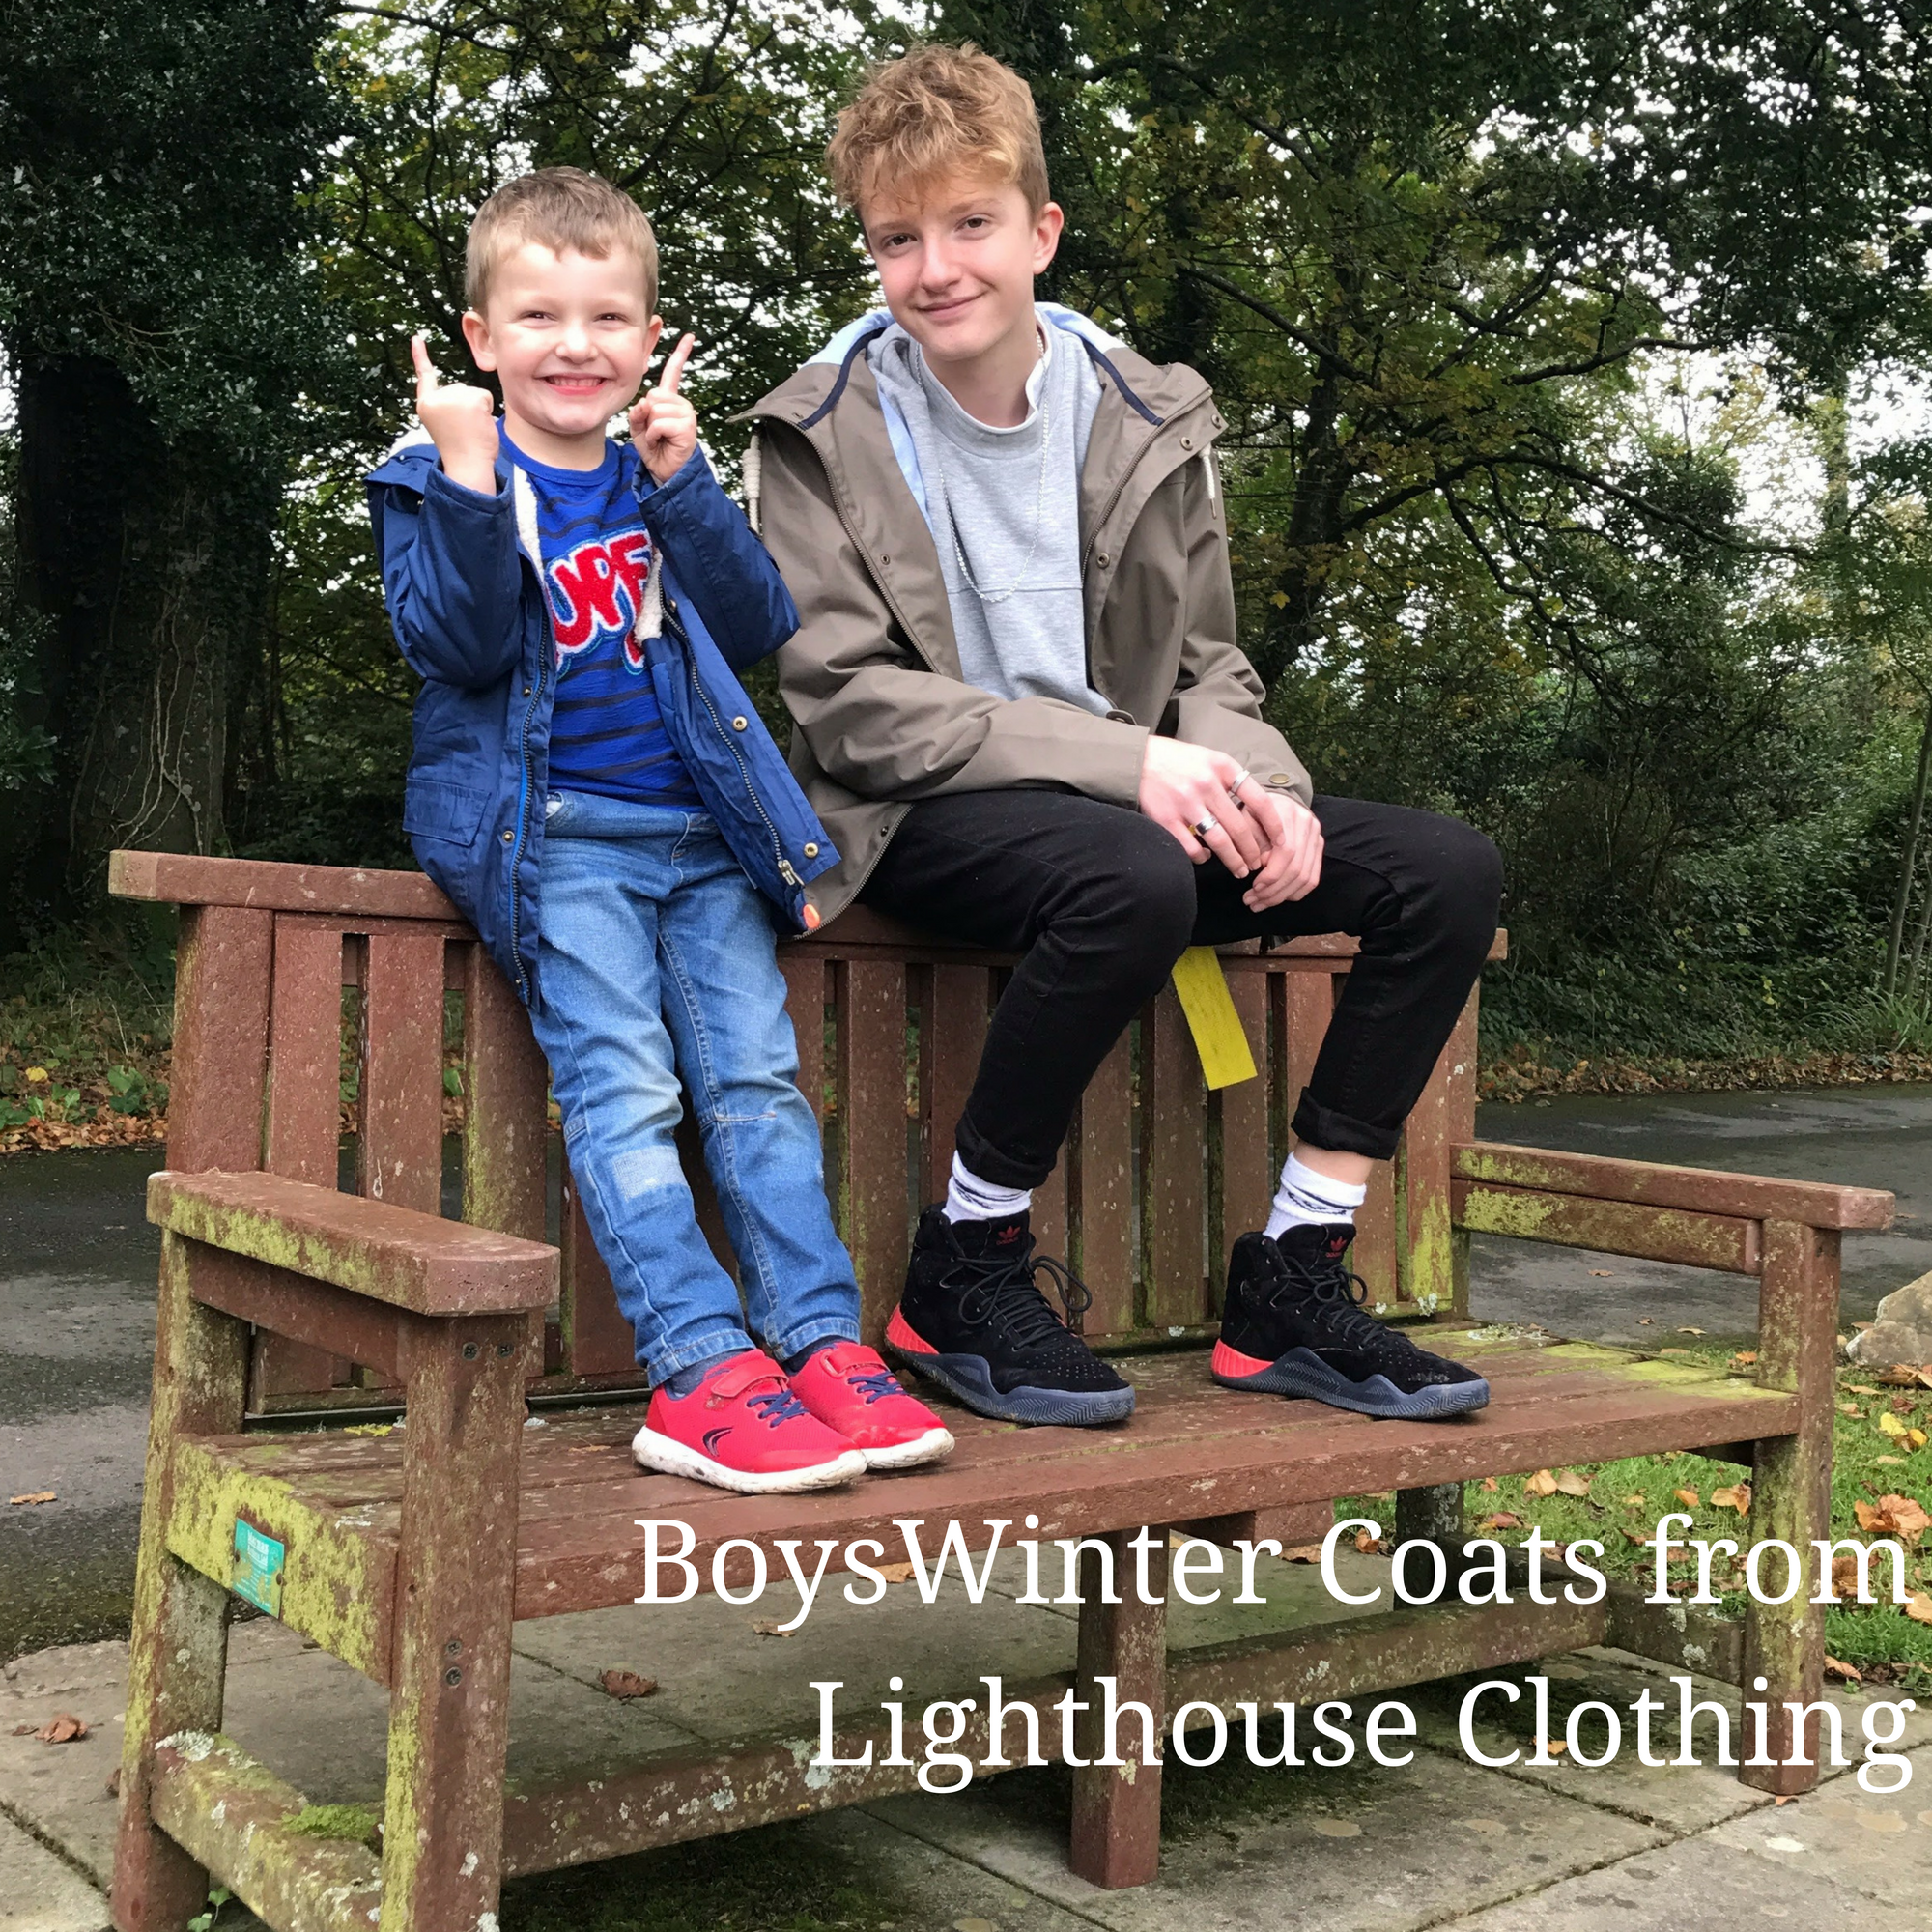 Boys Winter Coats from Lighthouse Clothing